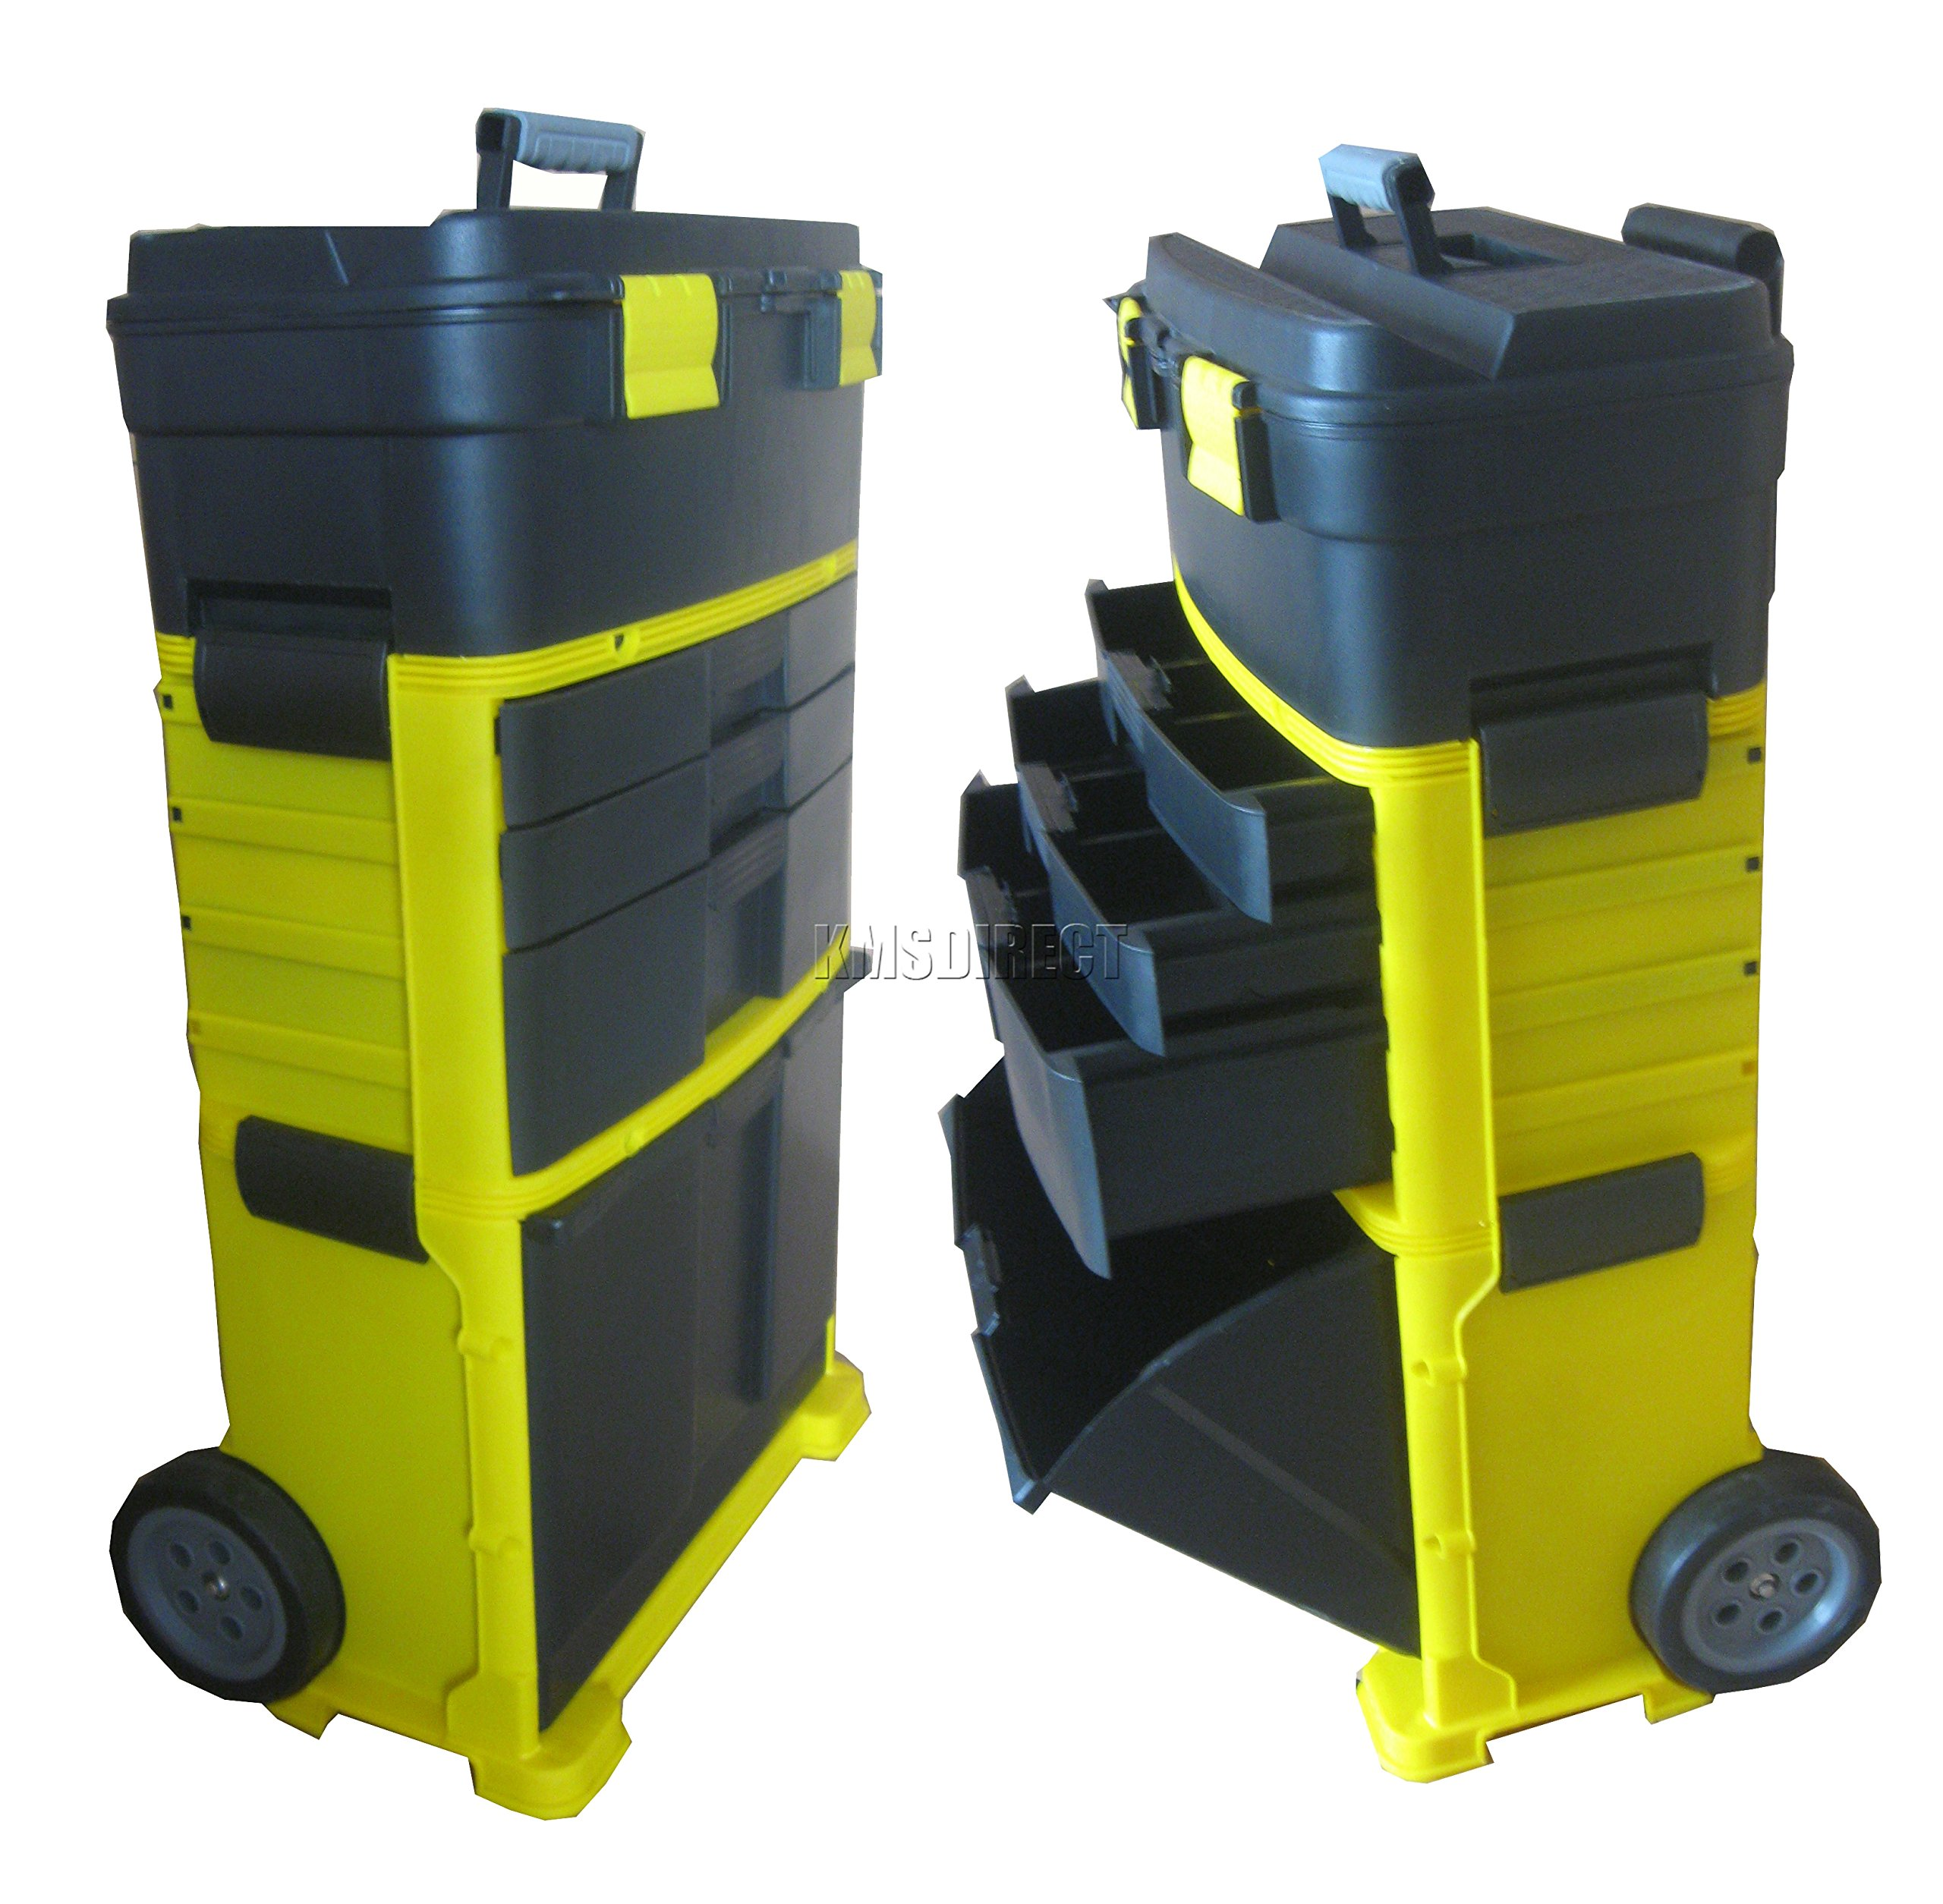 Extra Large Tool Box Heavy Duty On Wheels Rolling Plastic Storage Cabinet Chest